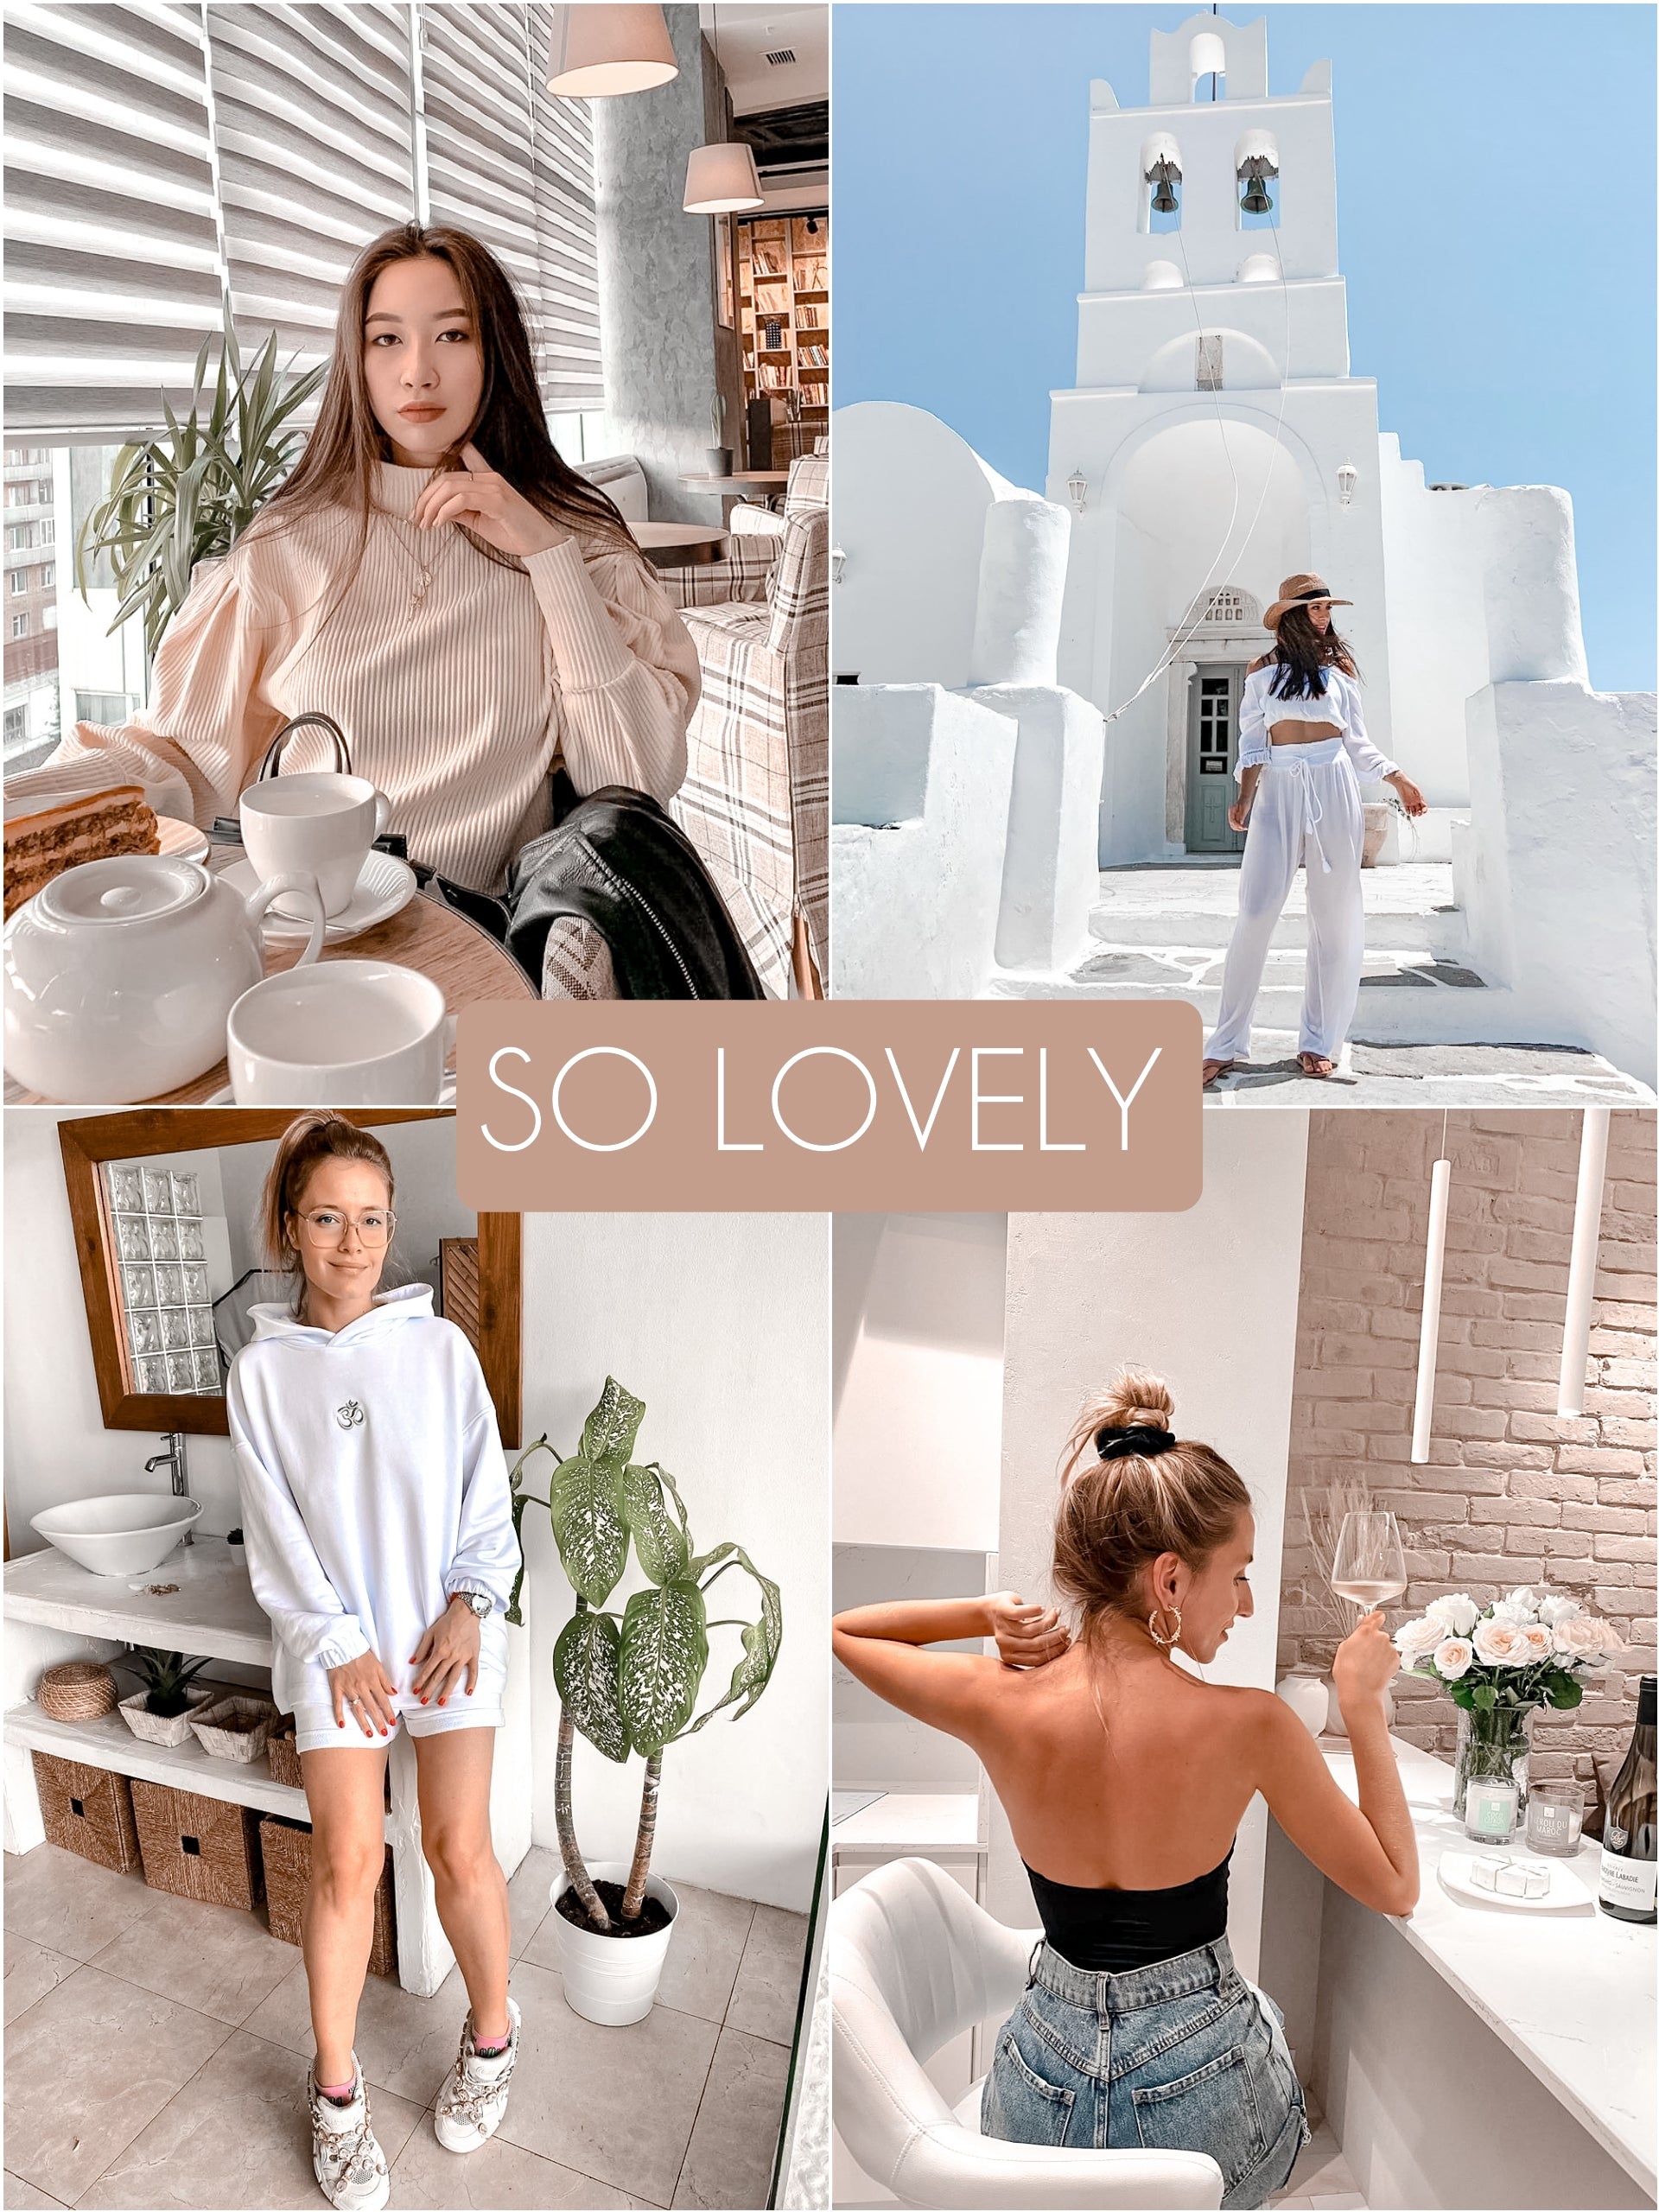 So Lovely | Superdeal - One Click Filter